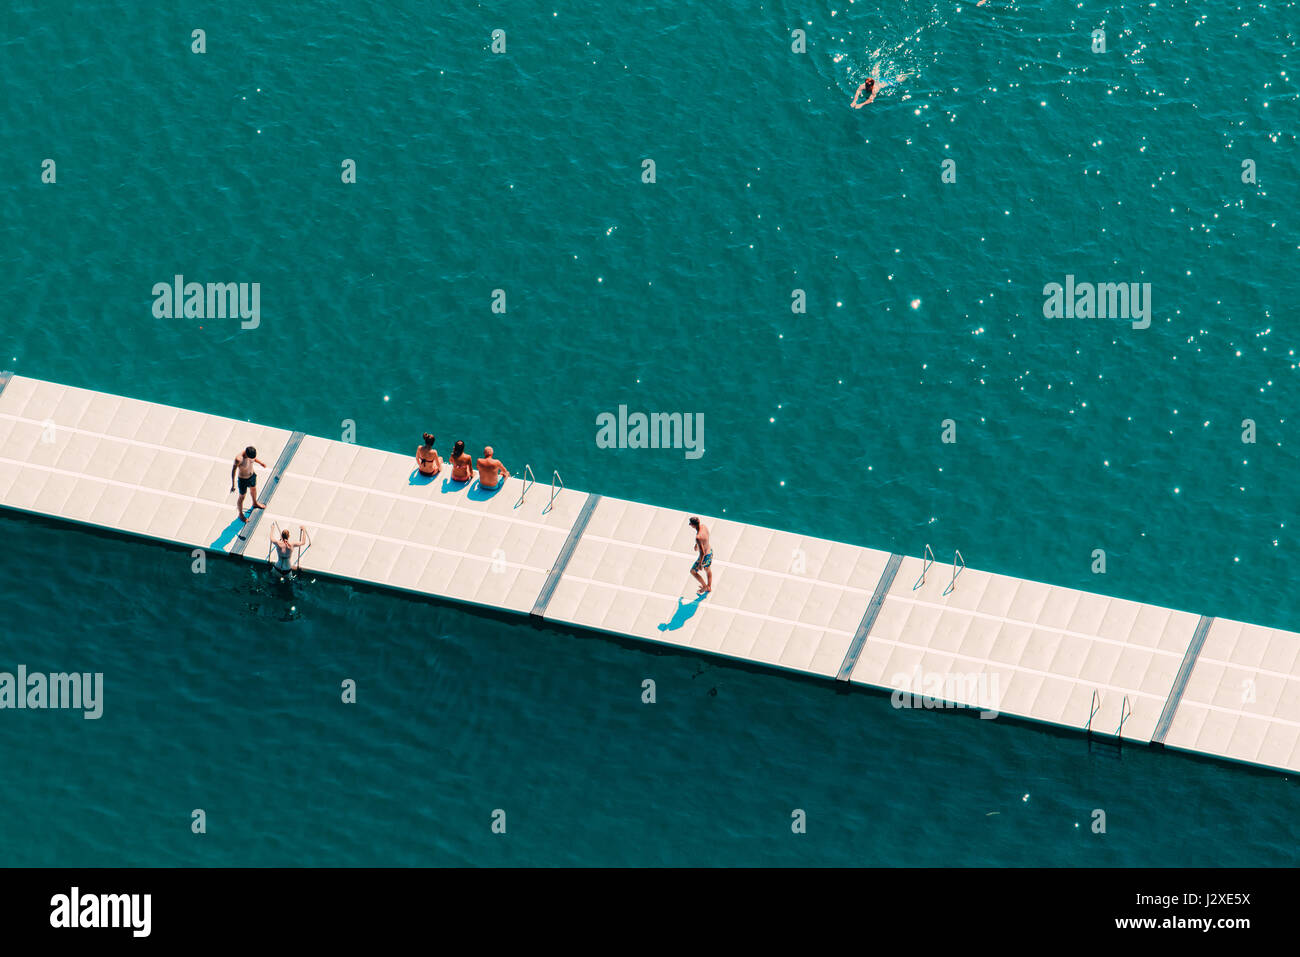 Unrecognizable people enjoying hot summer afternoon on lake Bled, aerial view of leisure and recreational activity - Stock Image